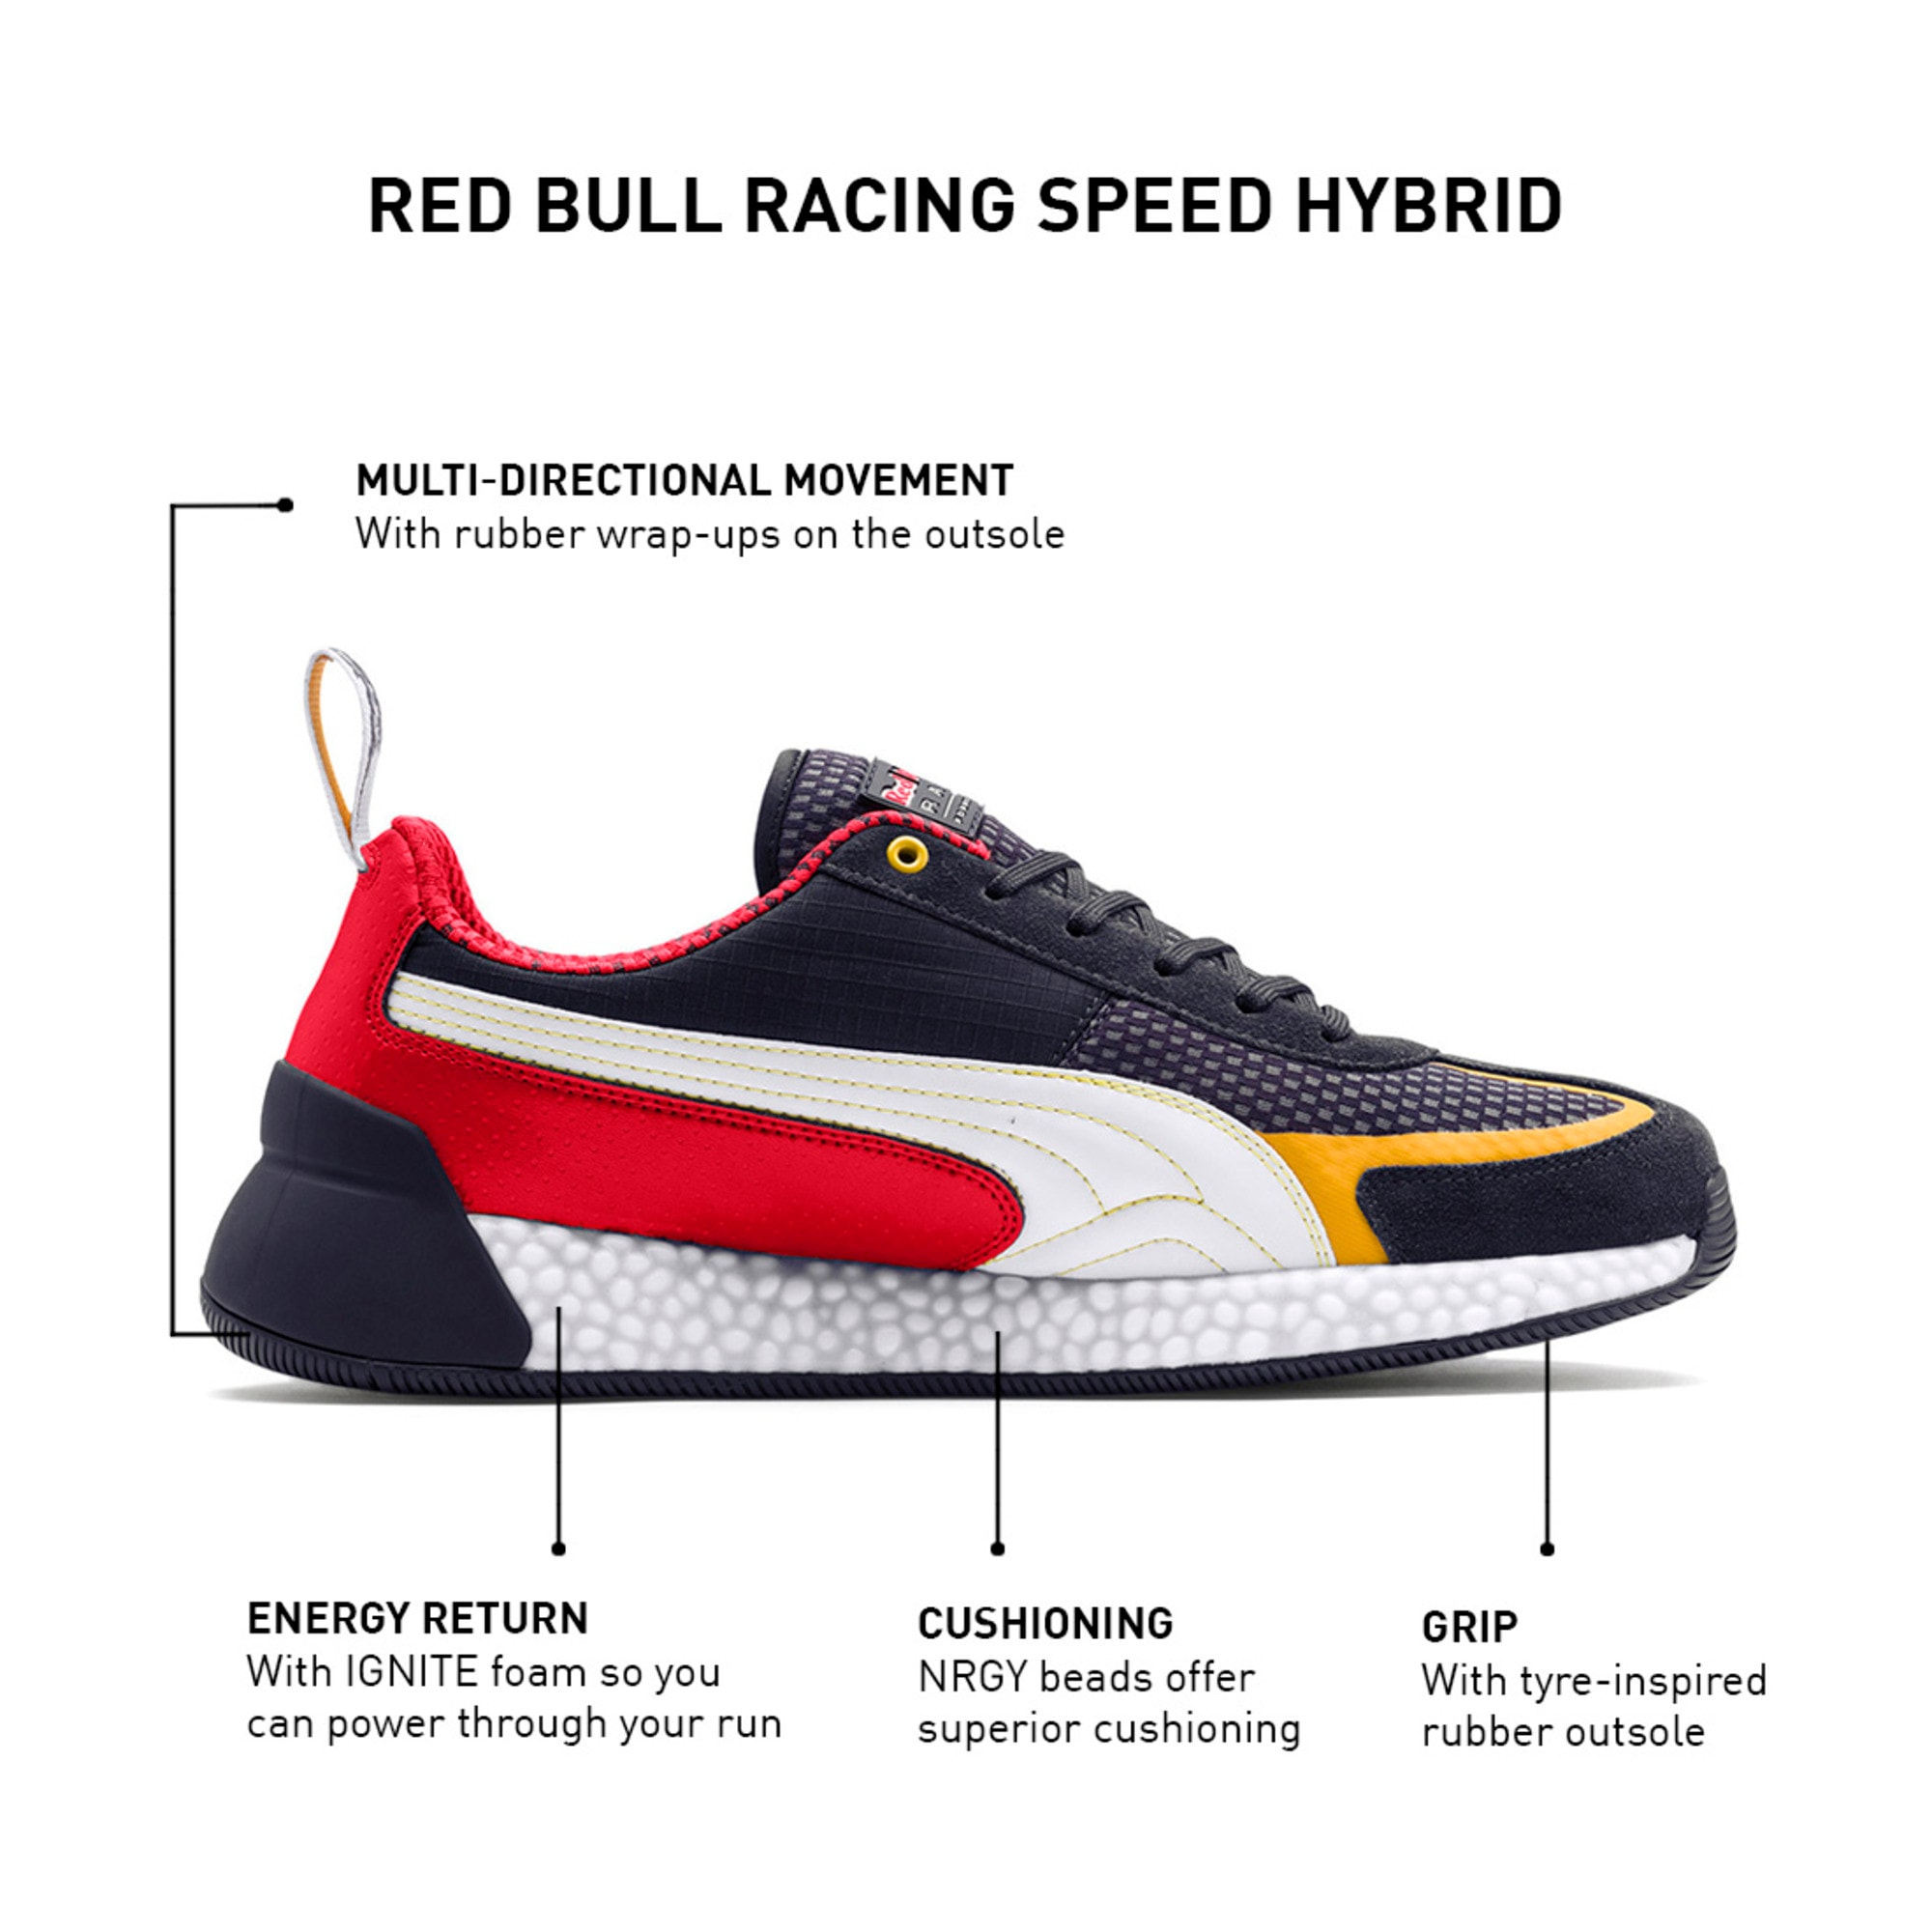 Thumbnail 9 of Red Bull Racing Speed HYBRID Men's Trainers, NIGHT SKY-White-Chinese Red, medium-IND